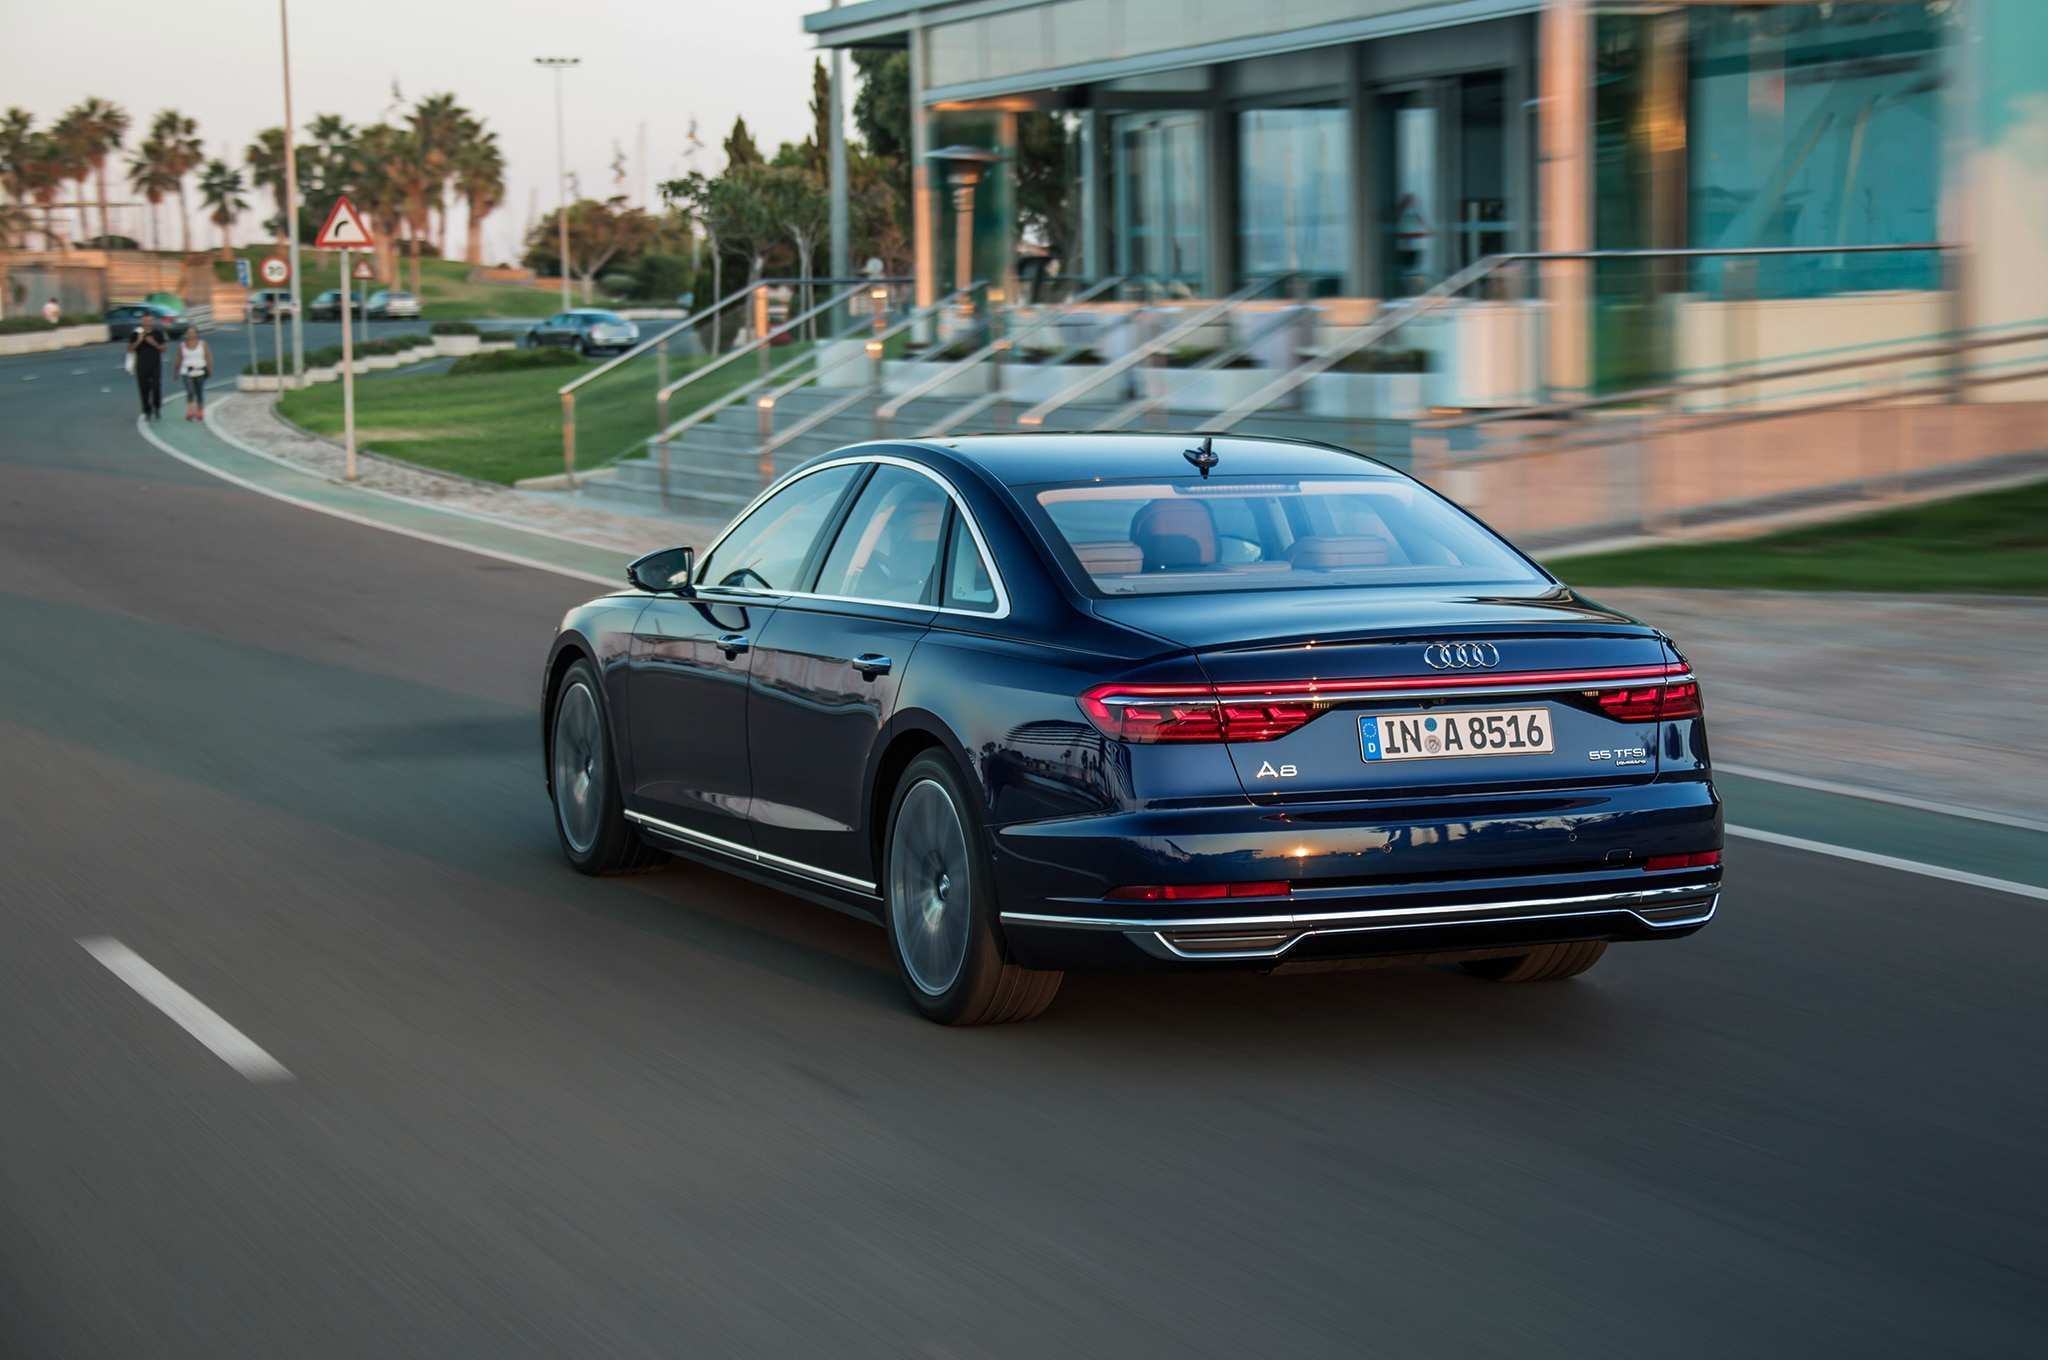 64 Concept of Audi A8 2019 Prices by Audi A8 2019